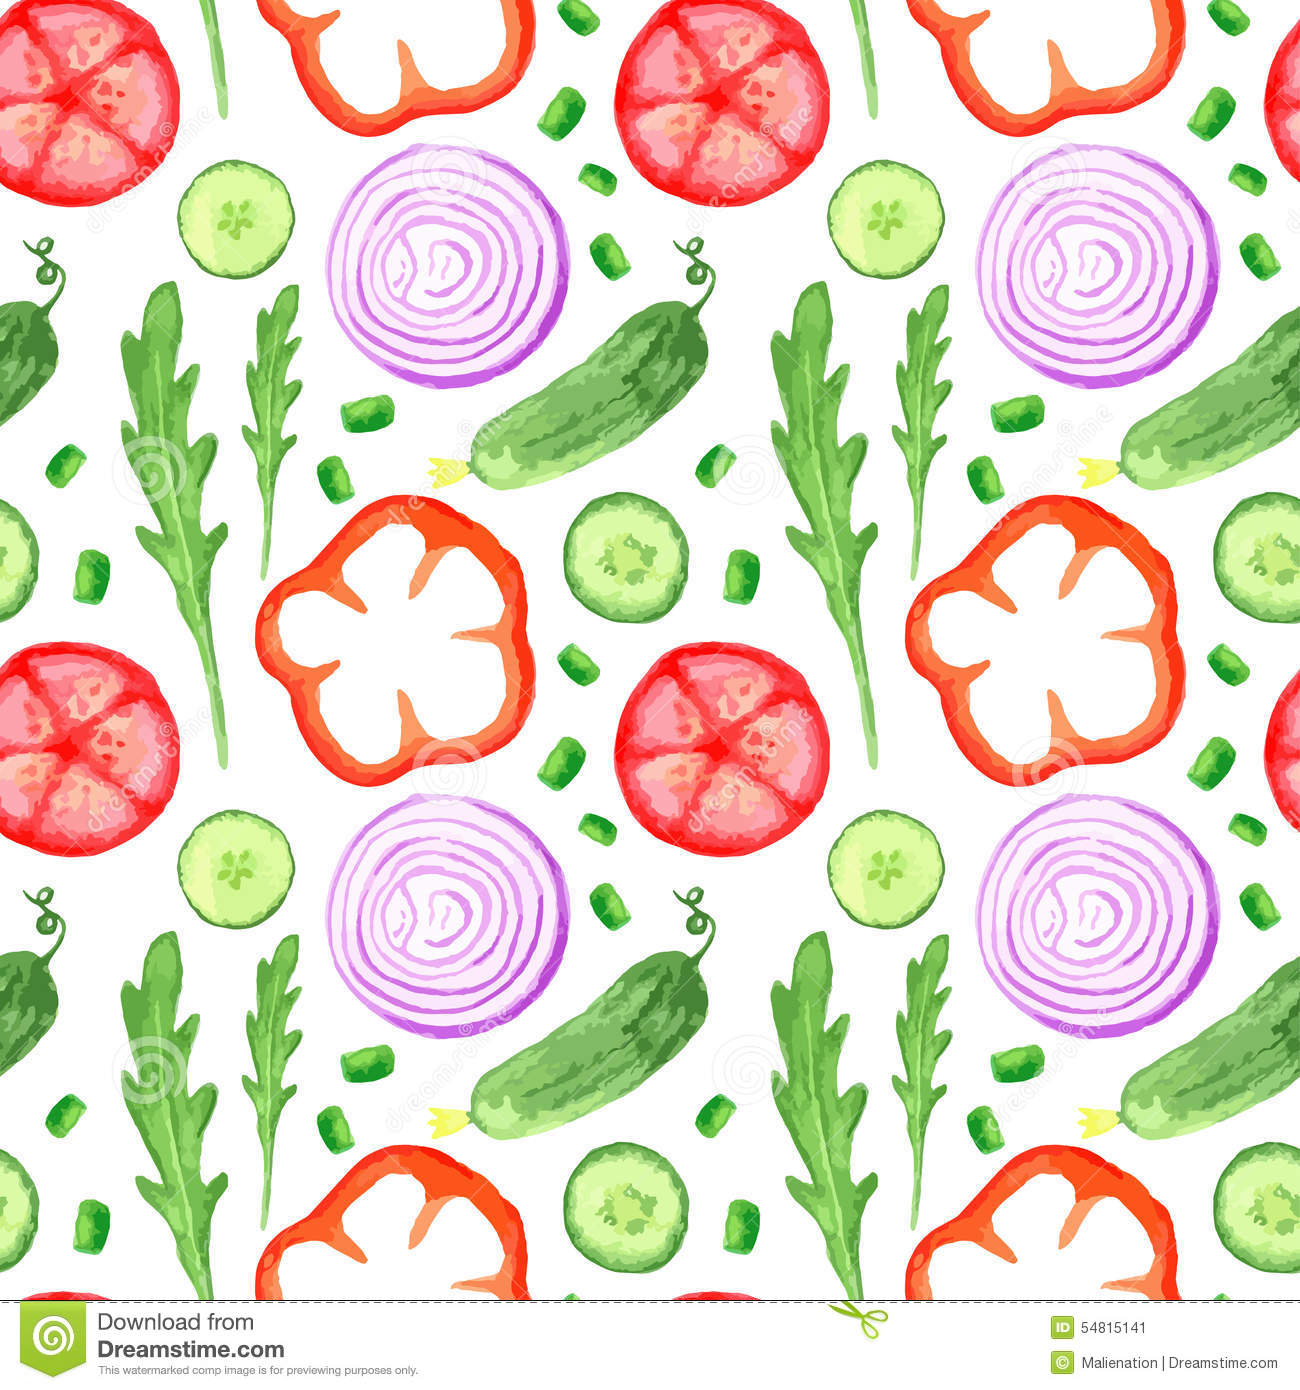 Hand paint watercolor seanless pattern with vegetables set eat local farm market rustic illustrations with a arugula, onion